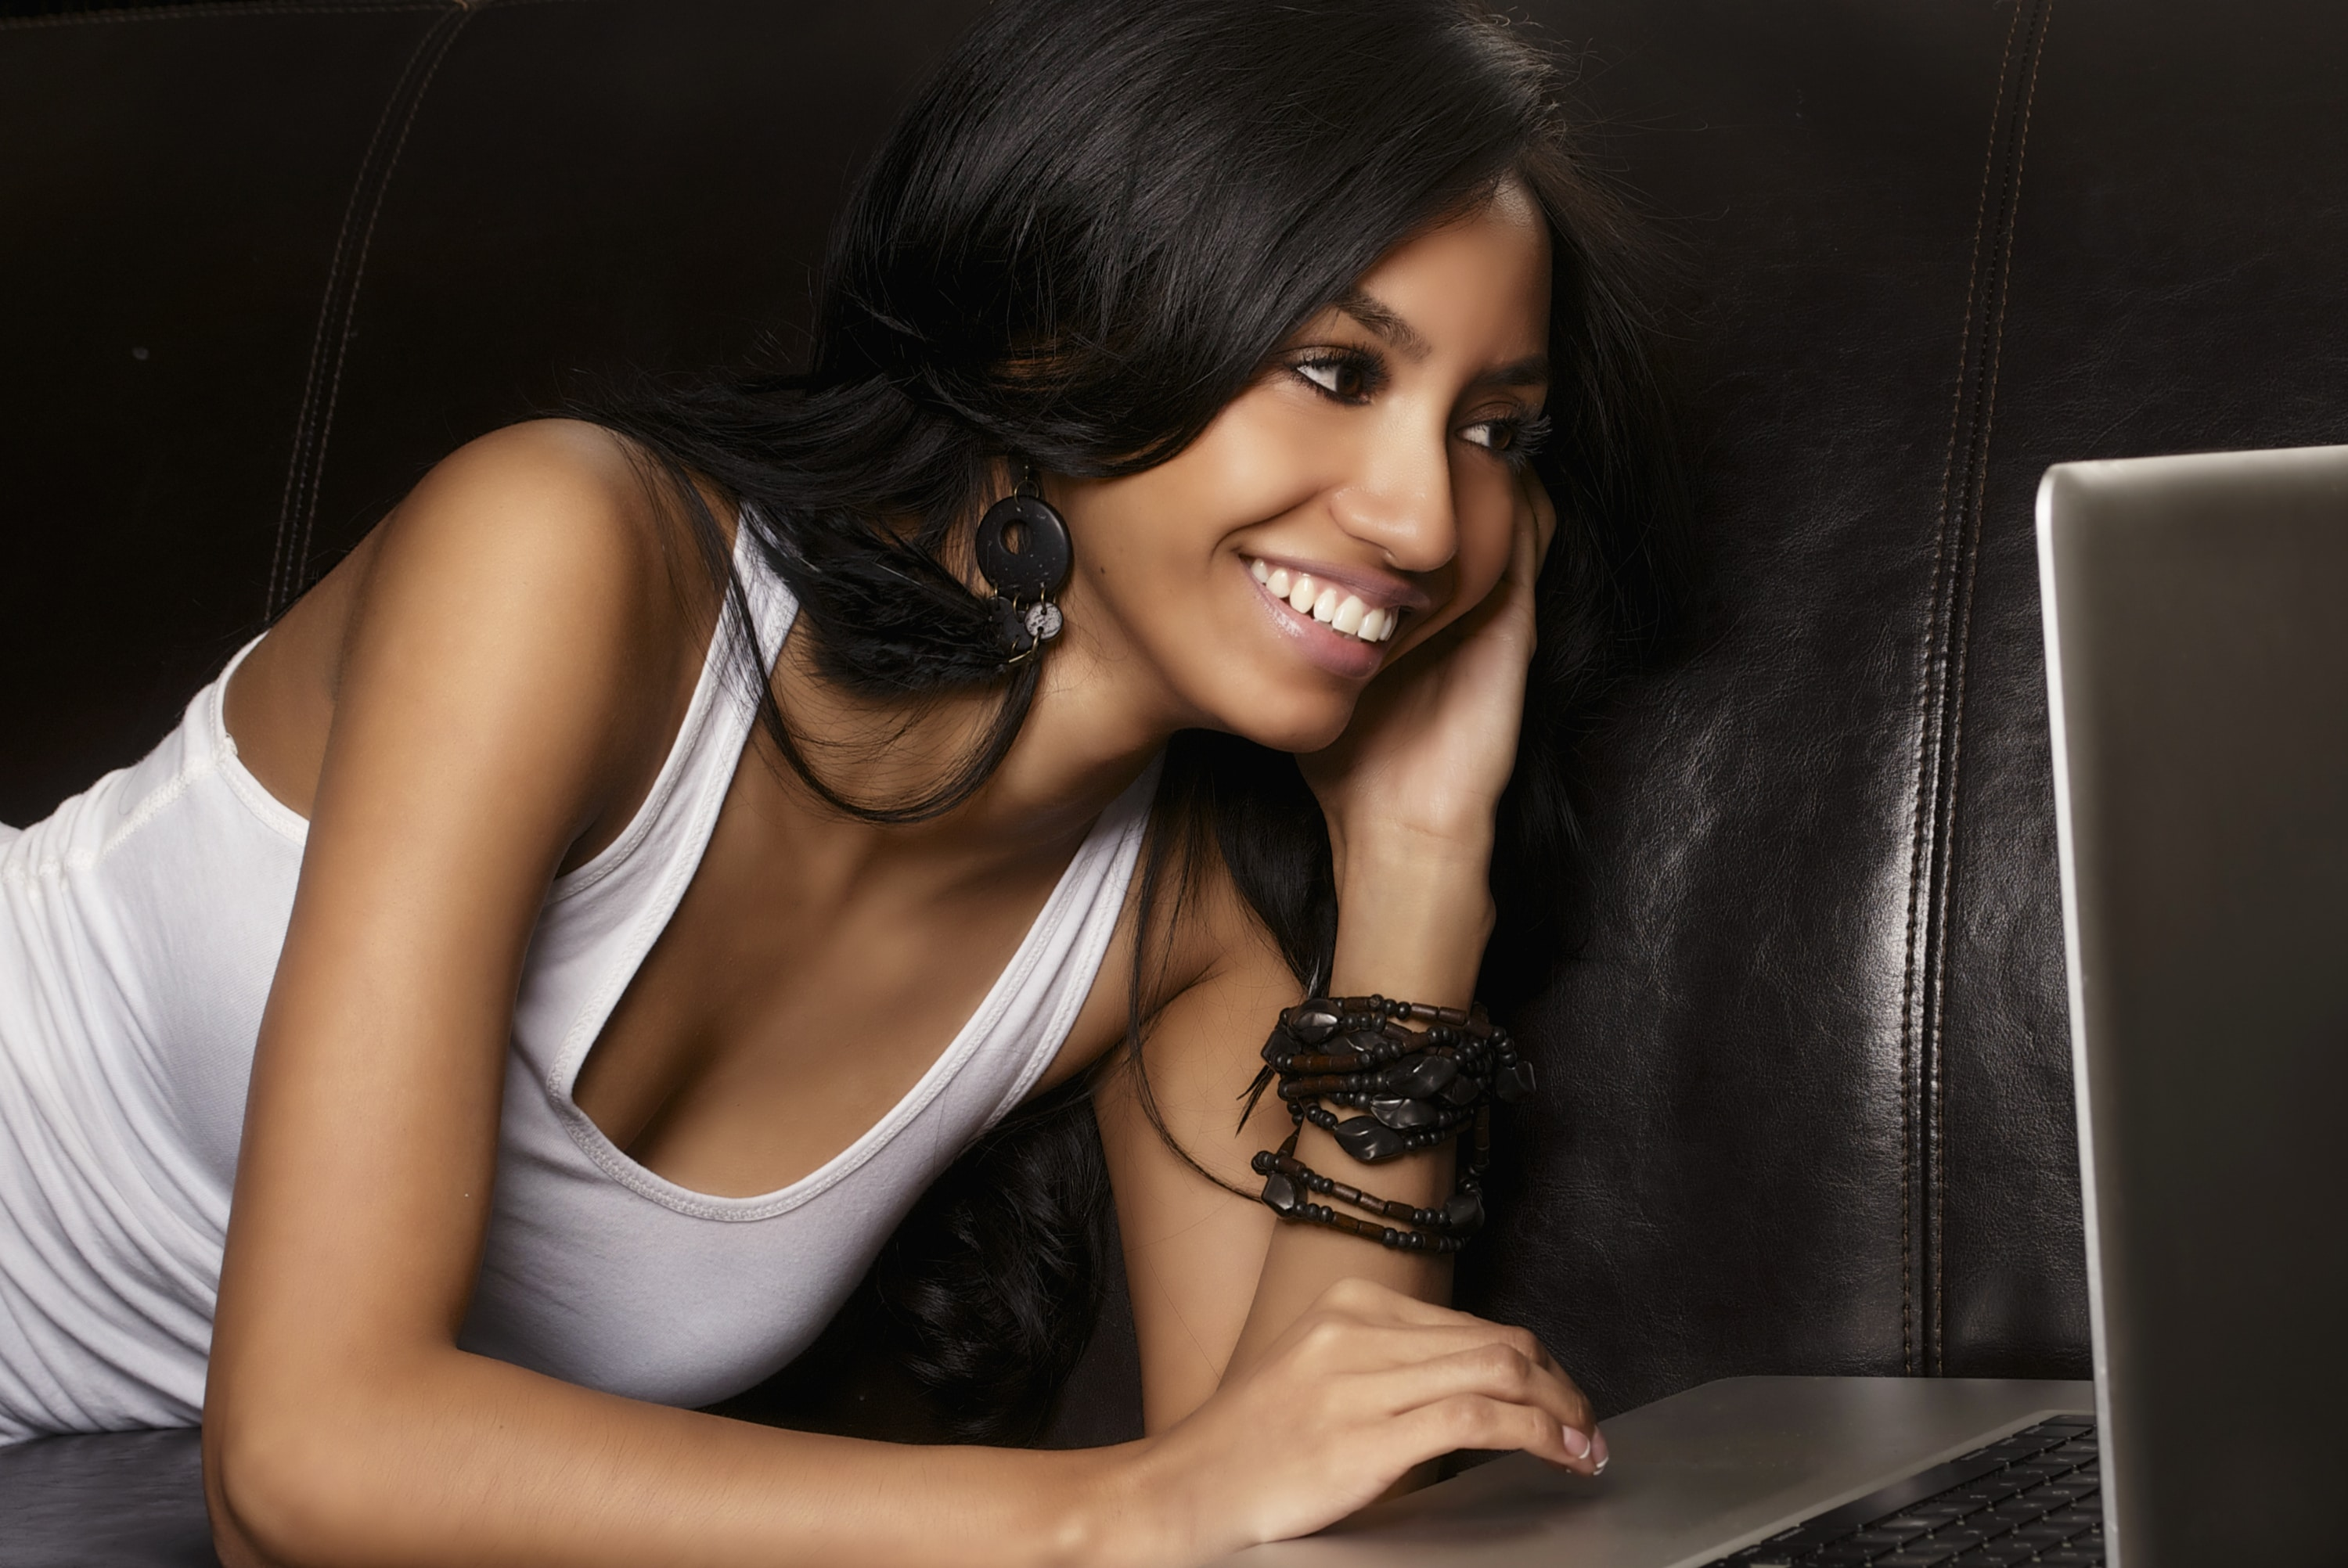 Free dating sites for big and beautiful